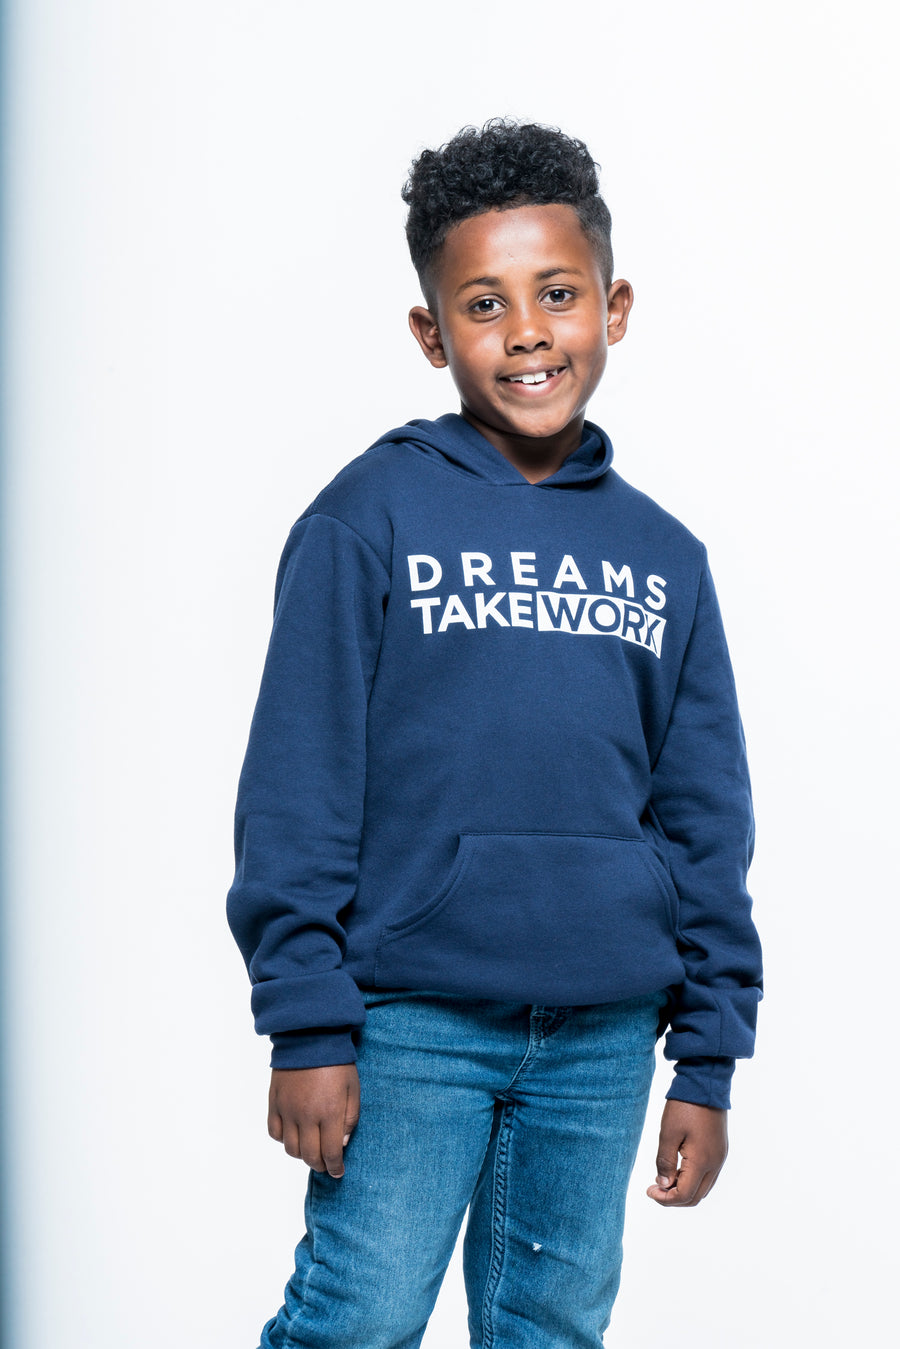 Dreams Take Work Youth Hoodie